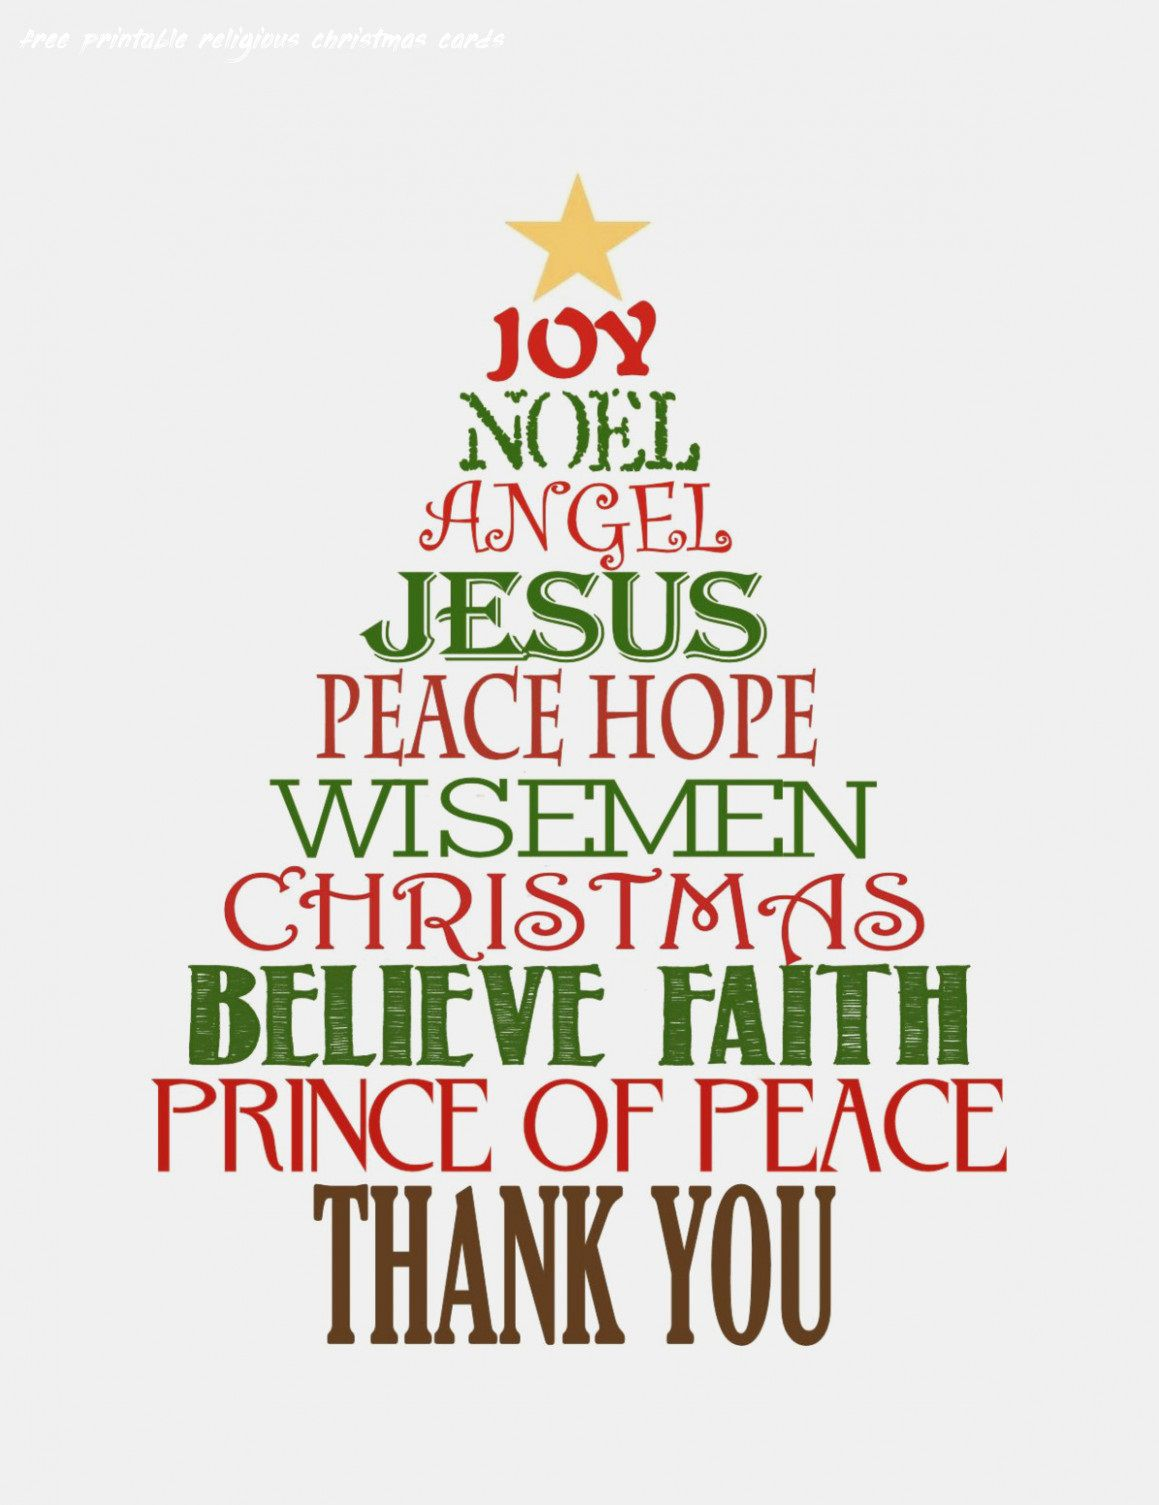 007 Unforgettable Free Printable Religiou Christma Card Template High Def  TemplatesFull